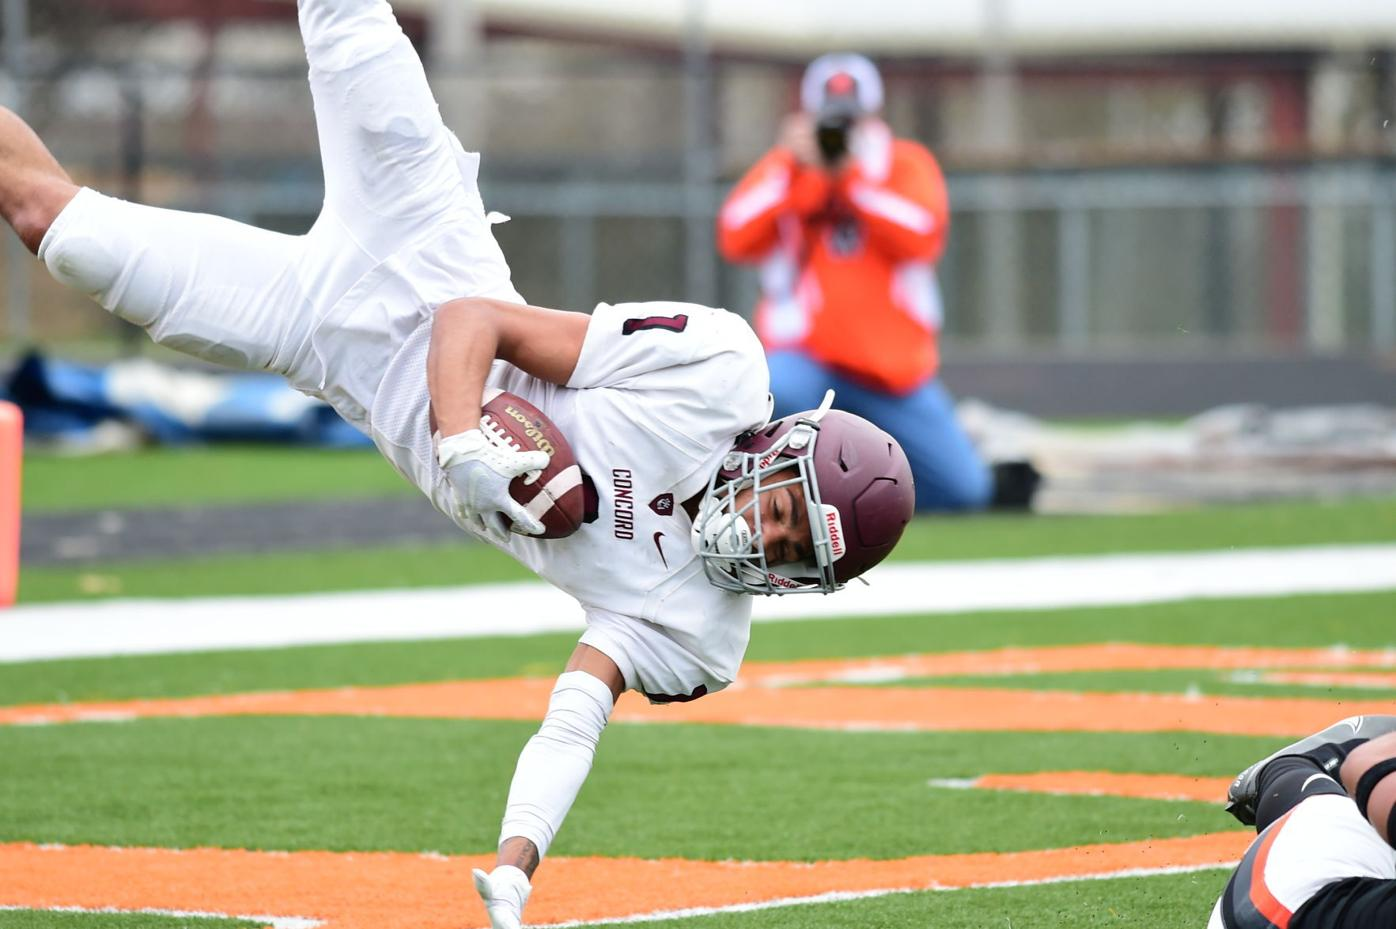 Jarod Bowie with a circus catch for the Concord Mountain Lions.JPG